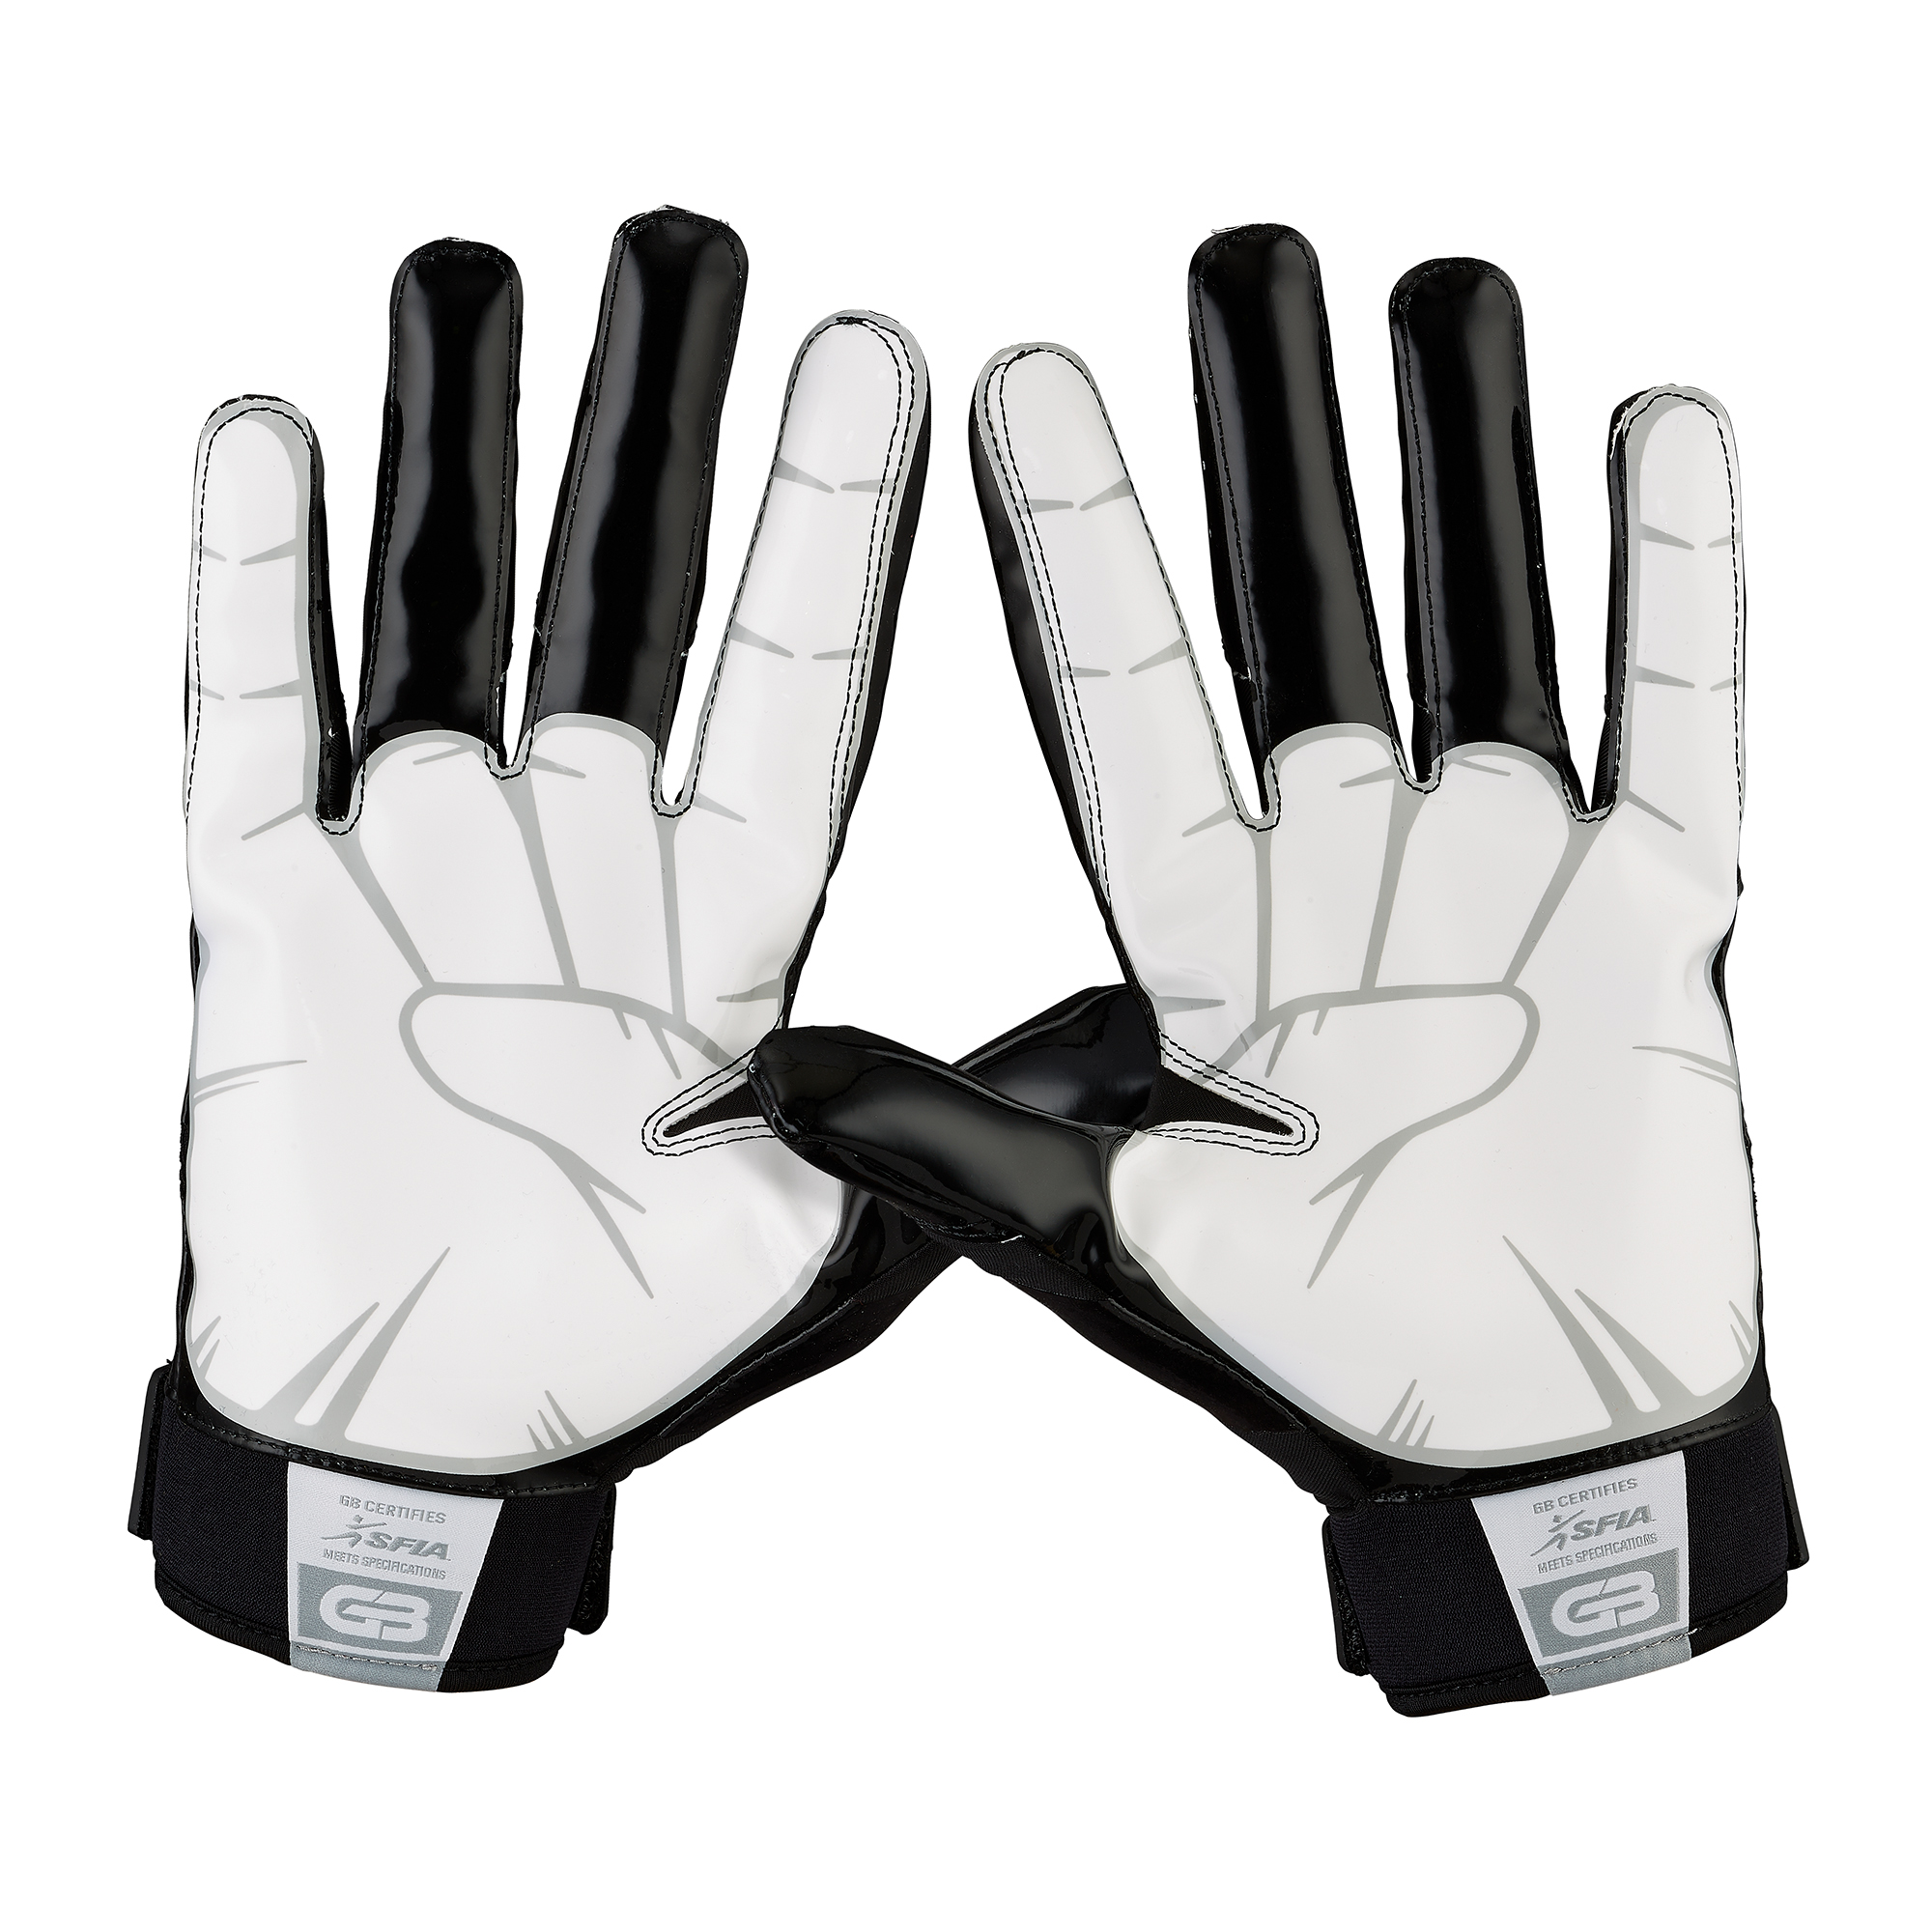 Grip Boost DNA Football Gloves with Engineered Grip Adult Sizes